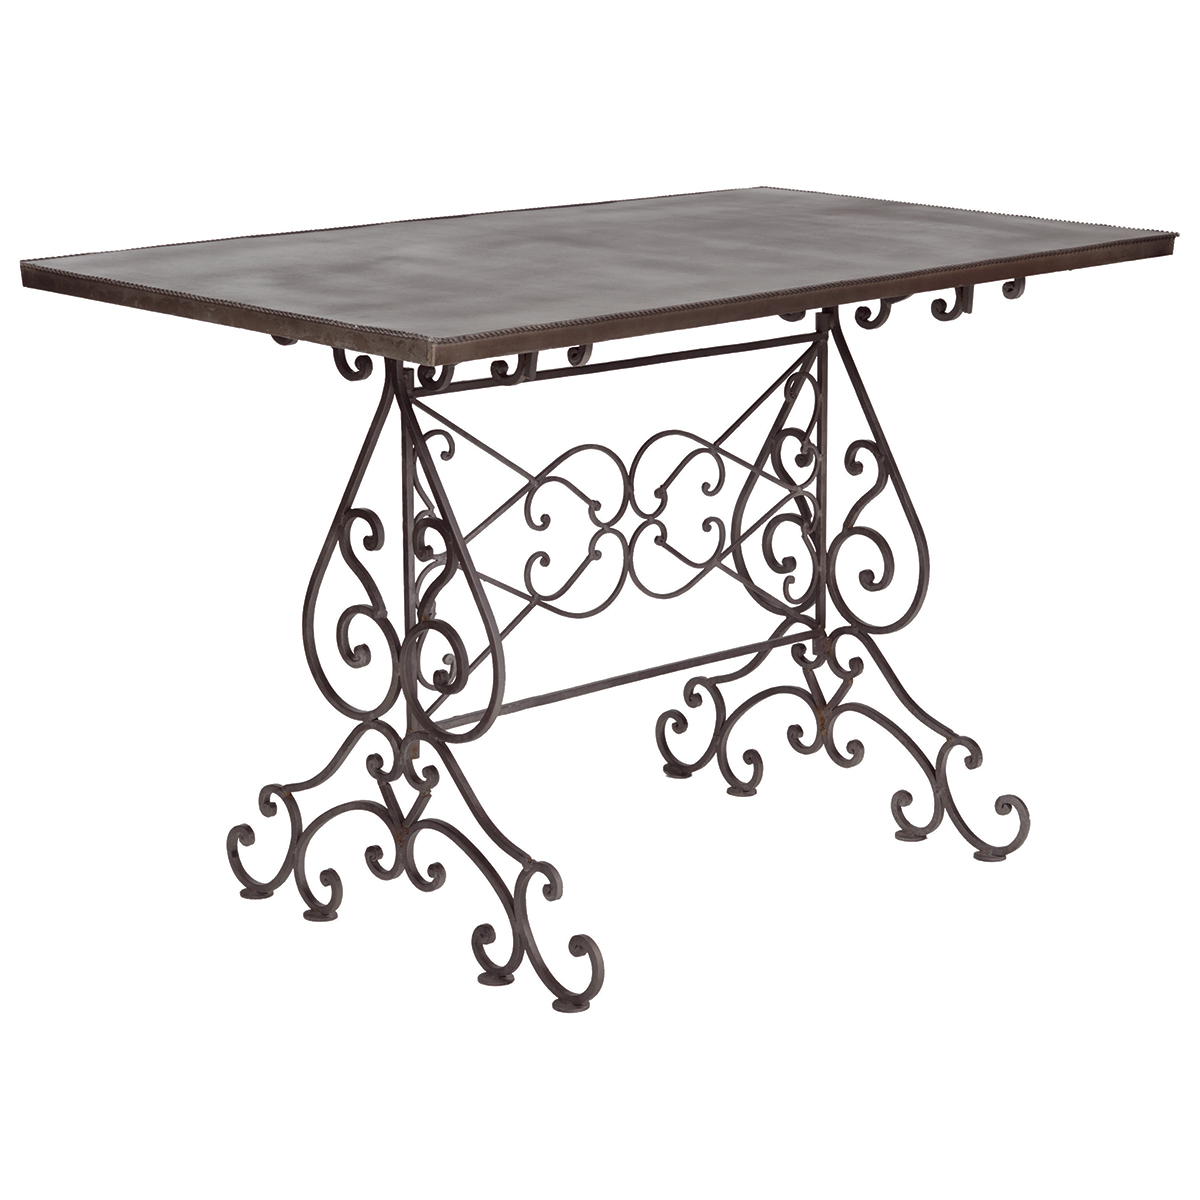 1200x1200 Boulevard Small Outdoor Dining Table